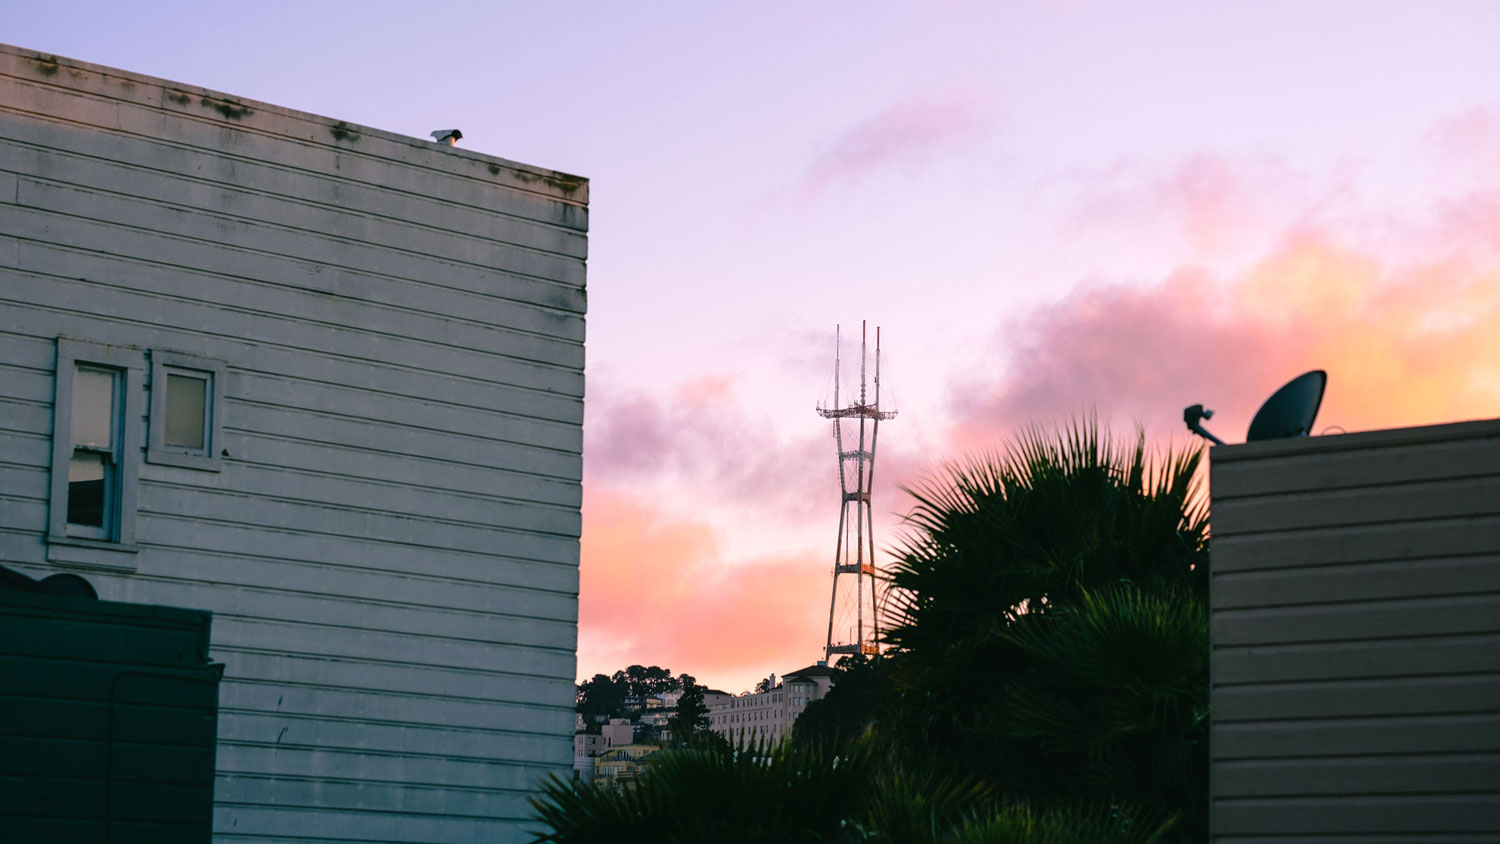 Sutro tower can be seen from our window